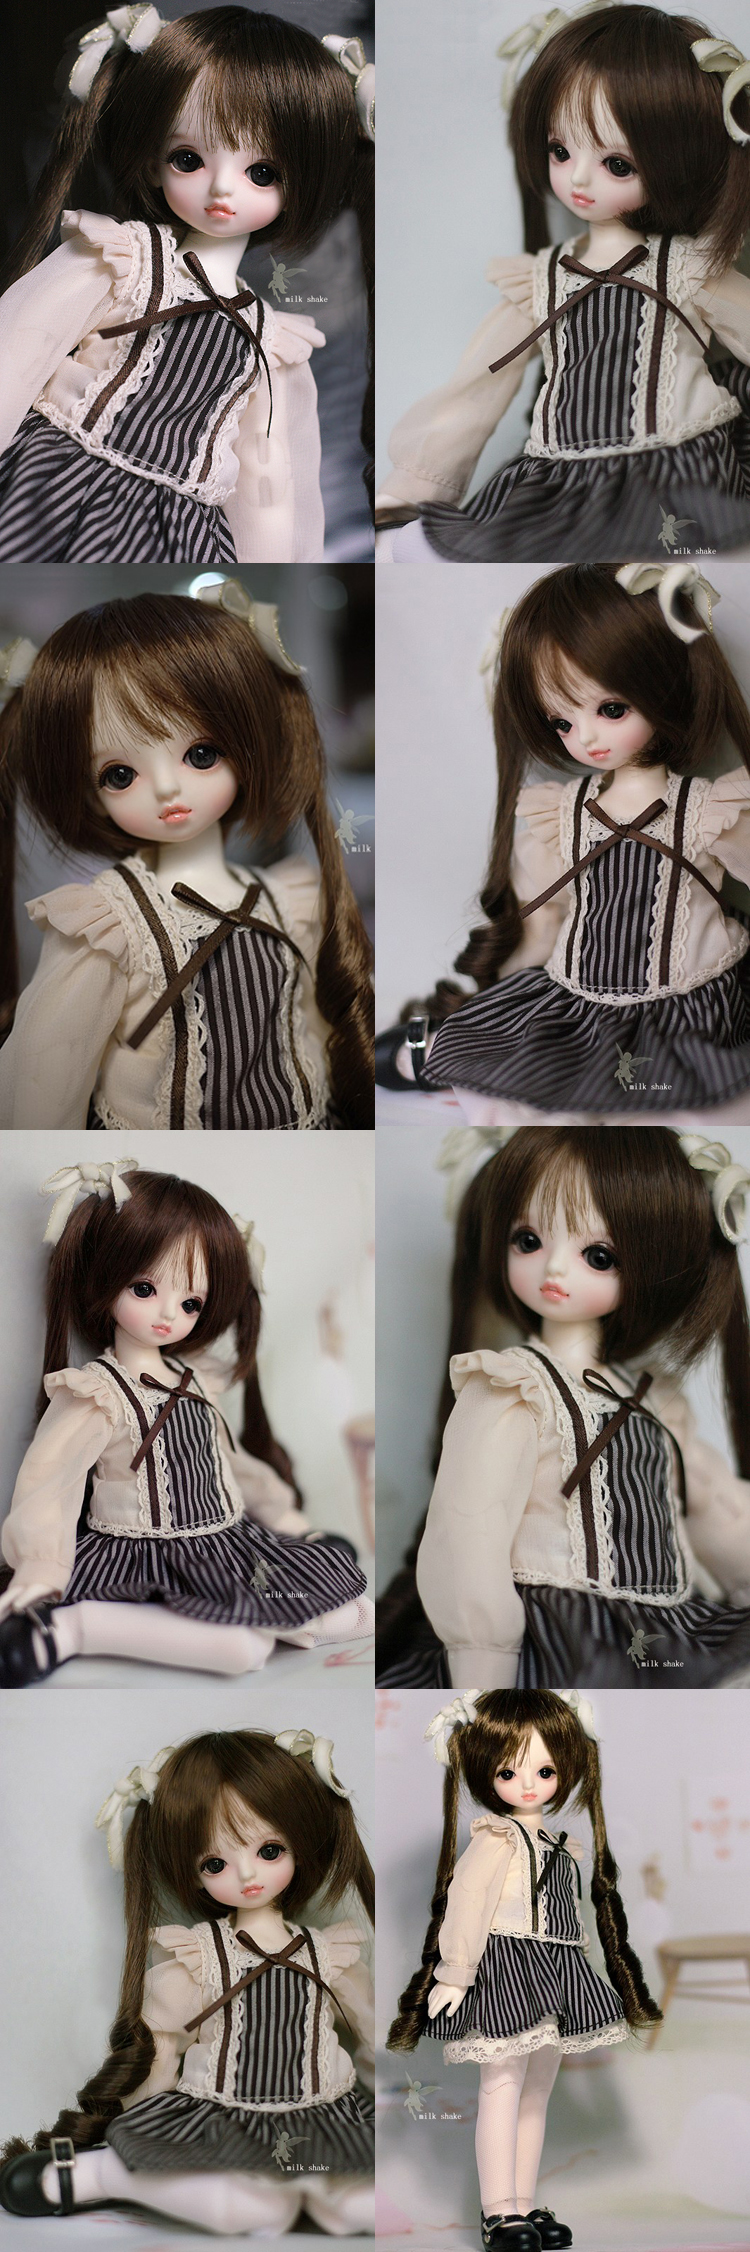 BJD Shake 16cm Girl Ball-jointed Doll